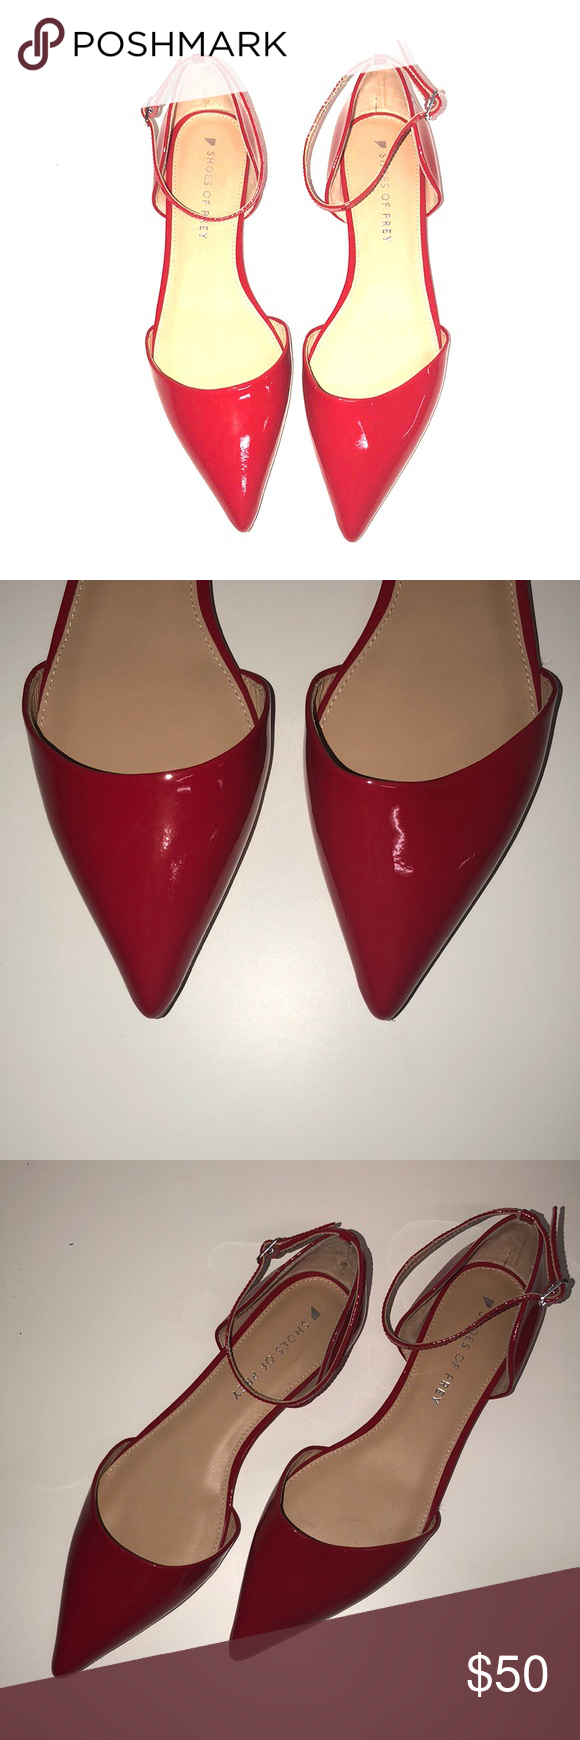 Shoes of Prey Lima 0 Patent Leather